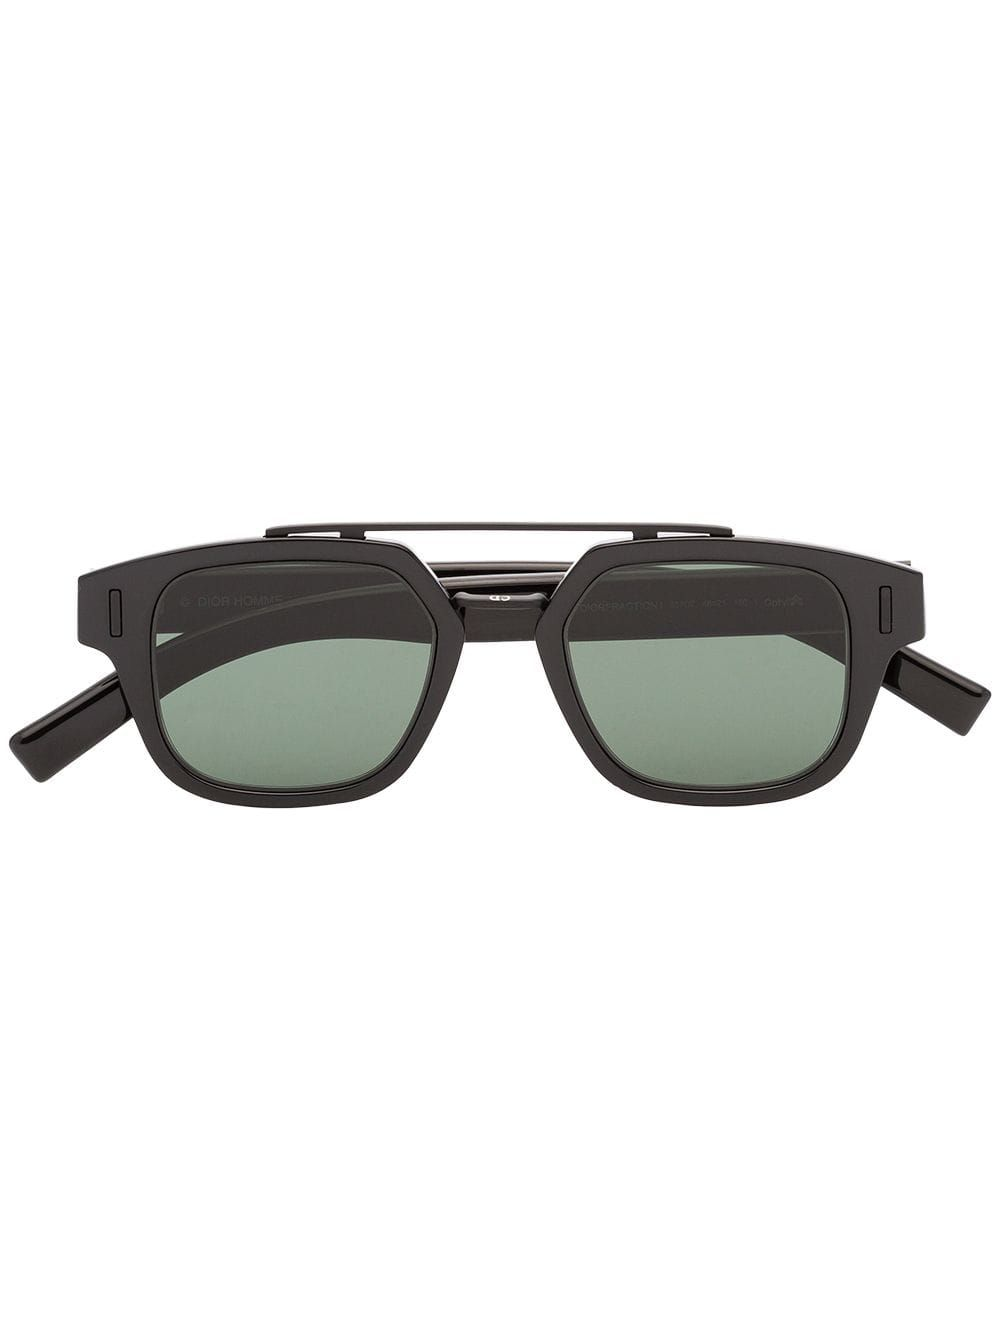 39c1f0e935c3 DIOR DIOR EYEWEAR FRACTION 1 DOUBLE-BRIDGE SUNGLASSES - BLACK.  dior ...